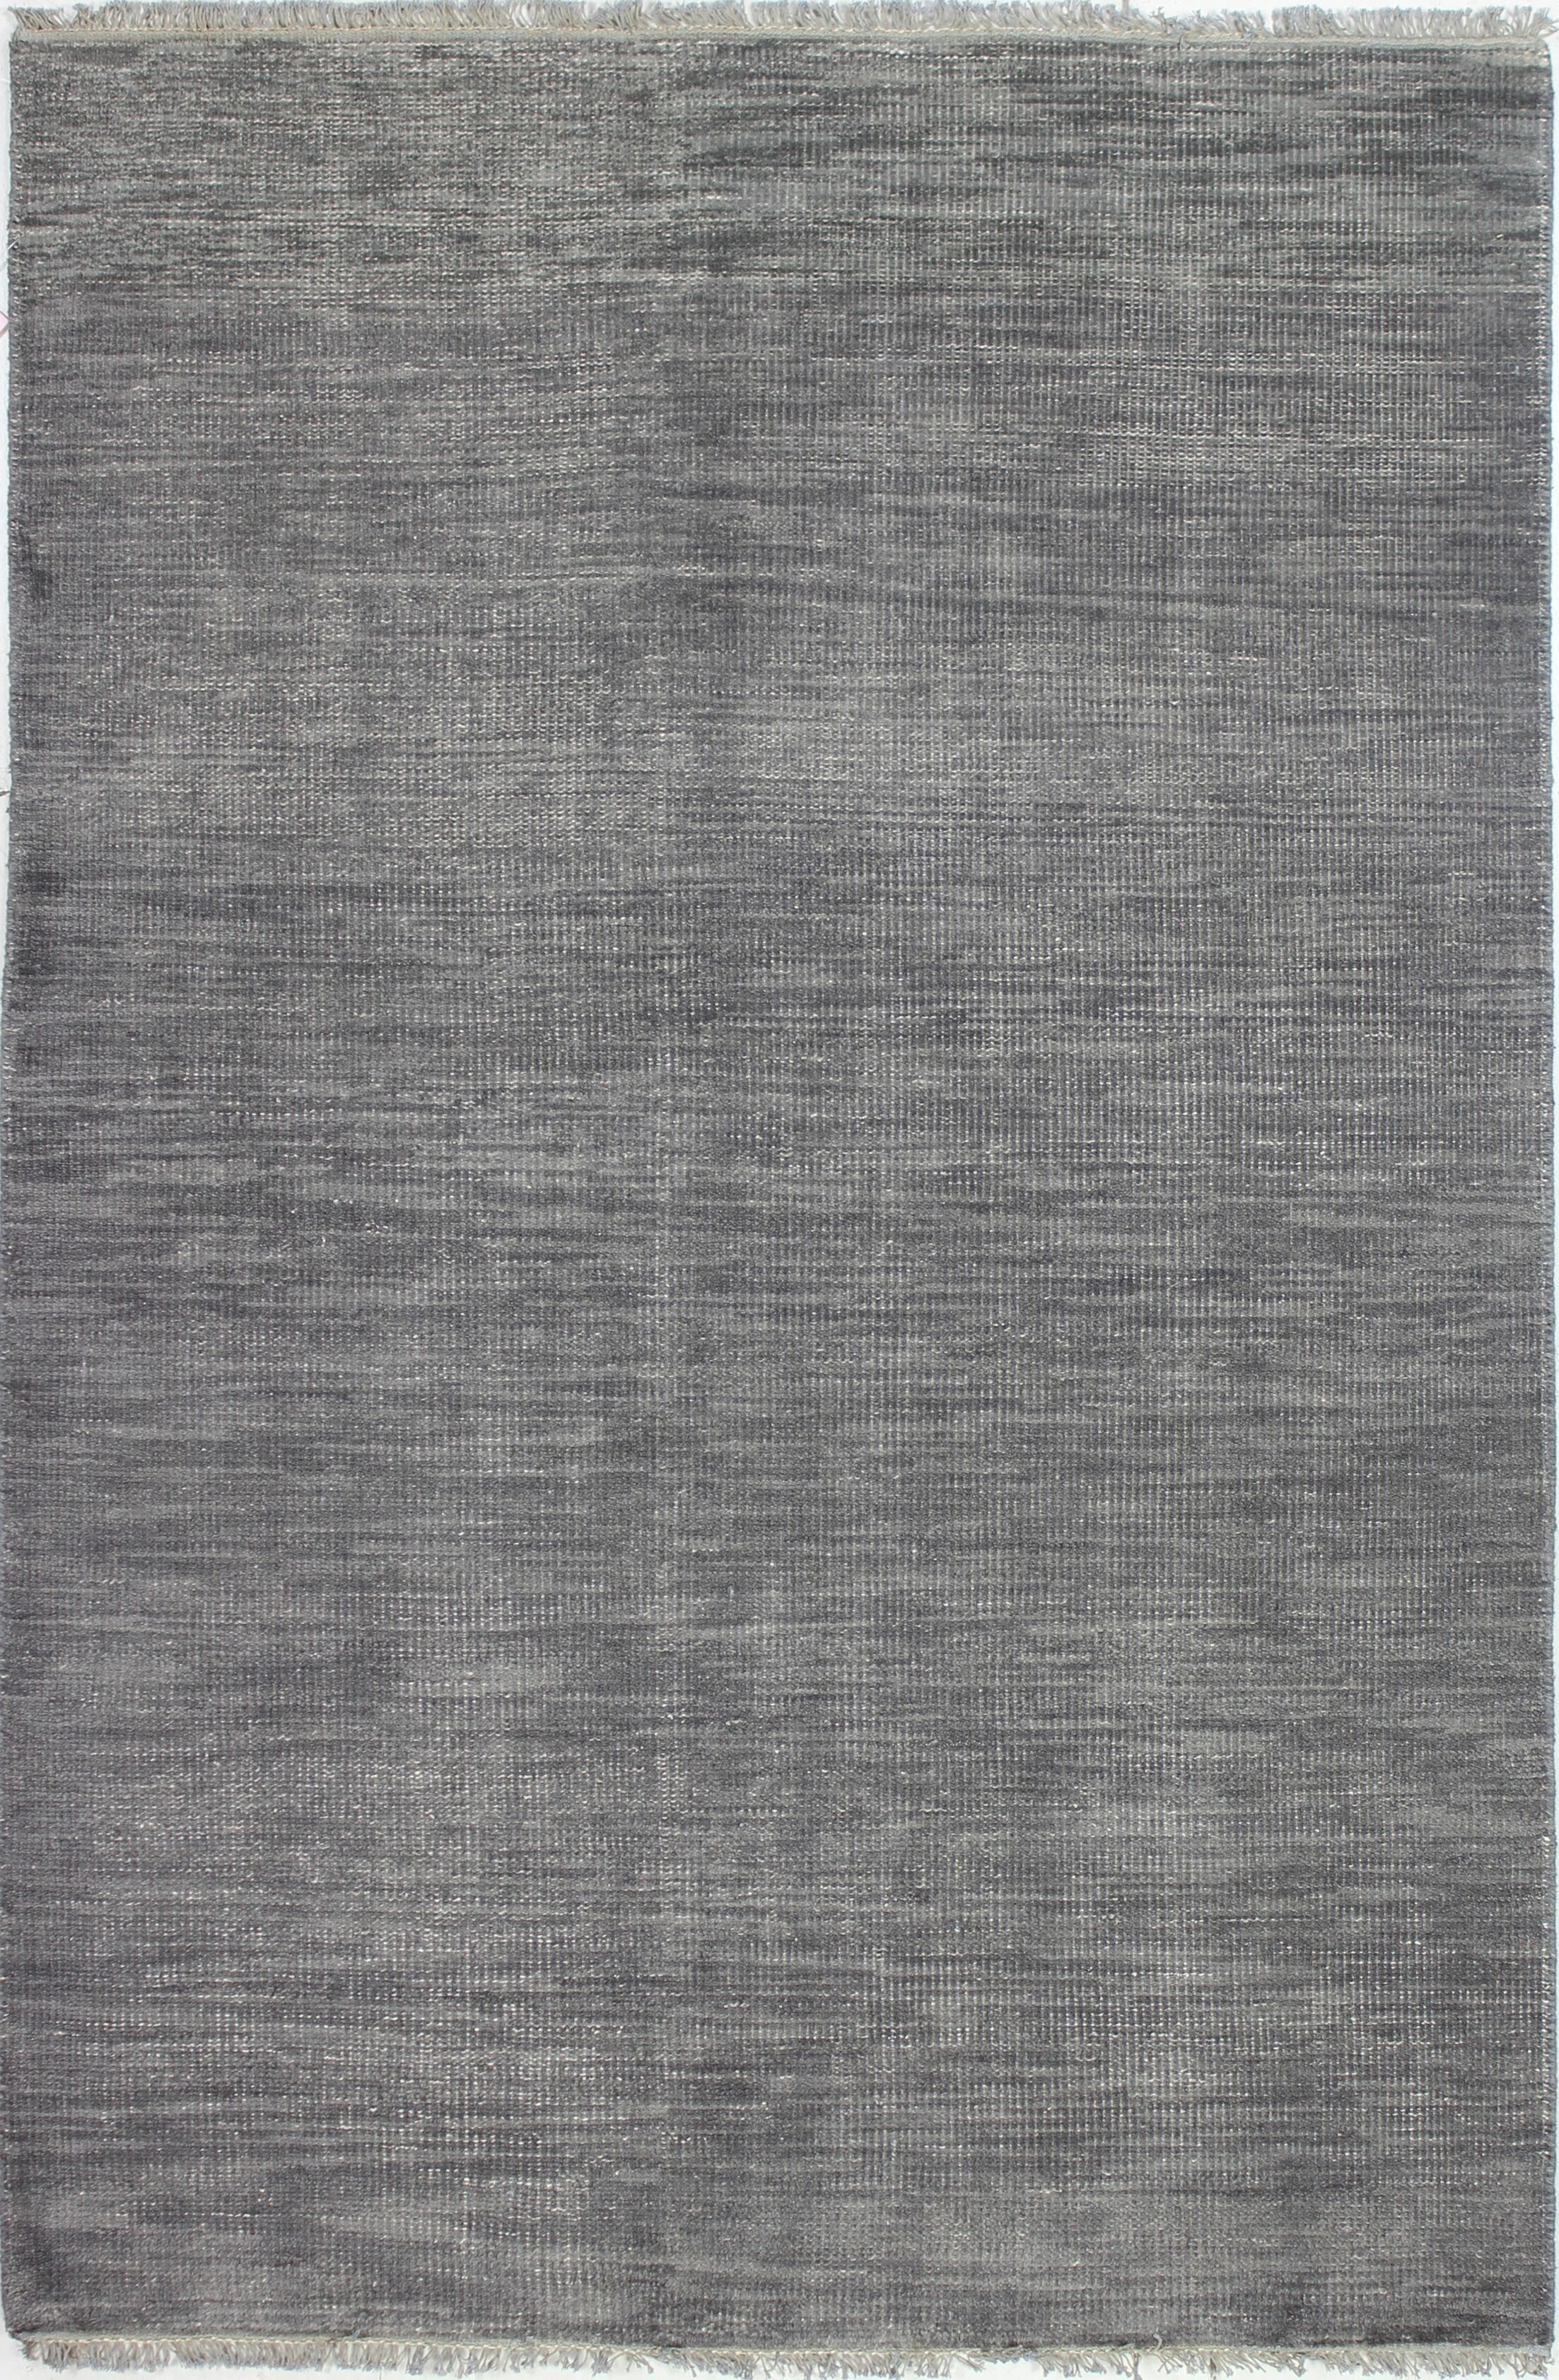 Kurtis Hand-Knotted Wool Grey Area Rug Rug Size: 5' x 7'6